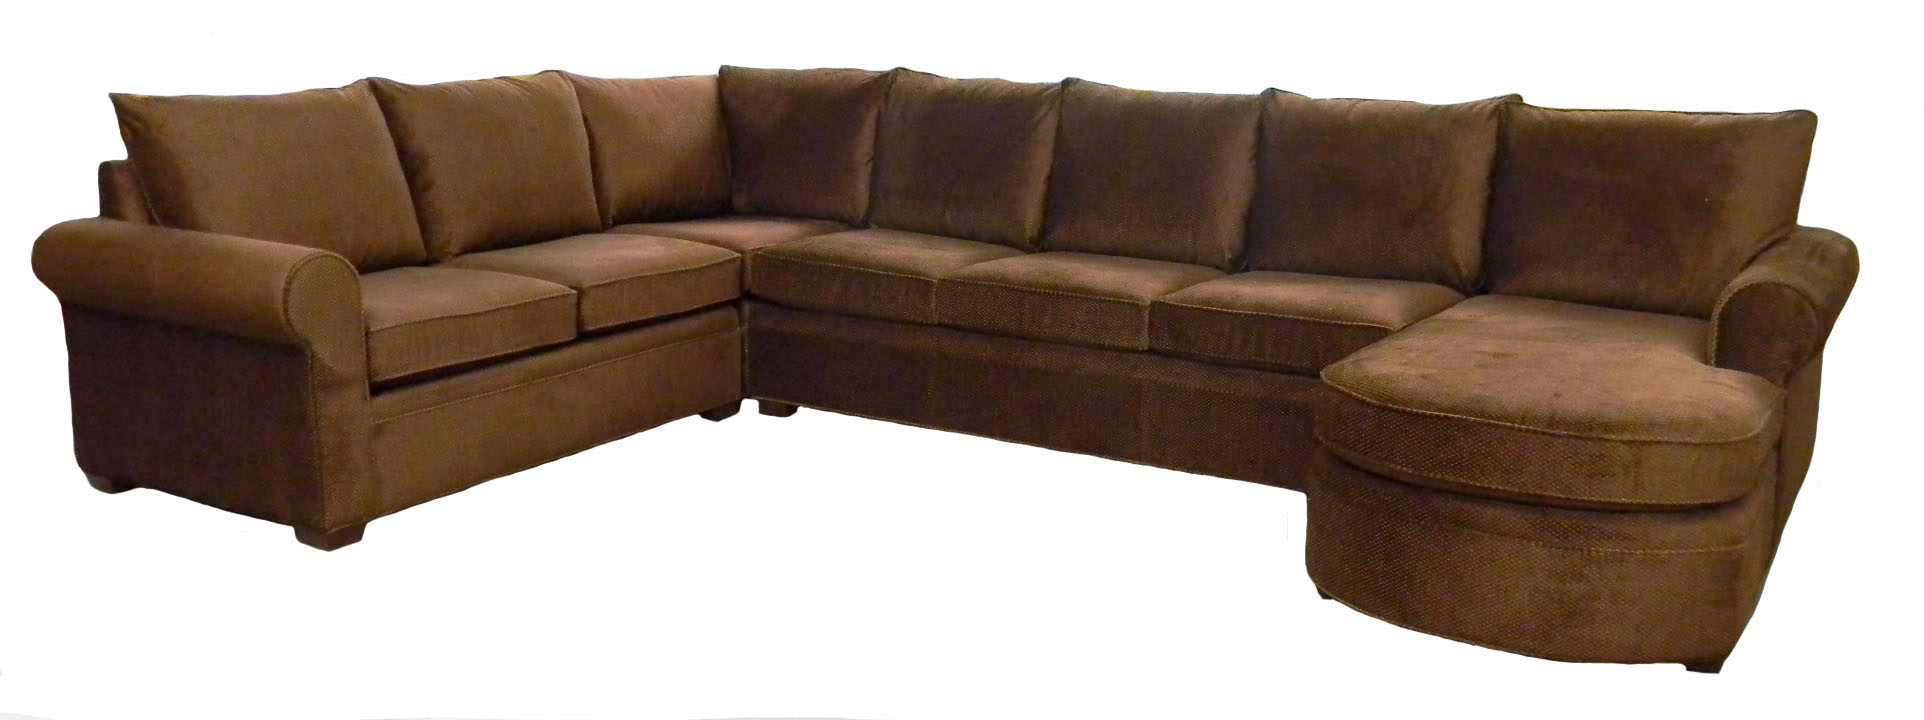 Byron Sectional Sofa   Young